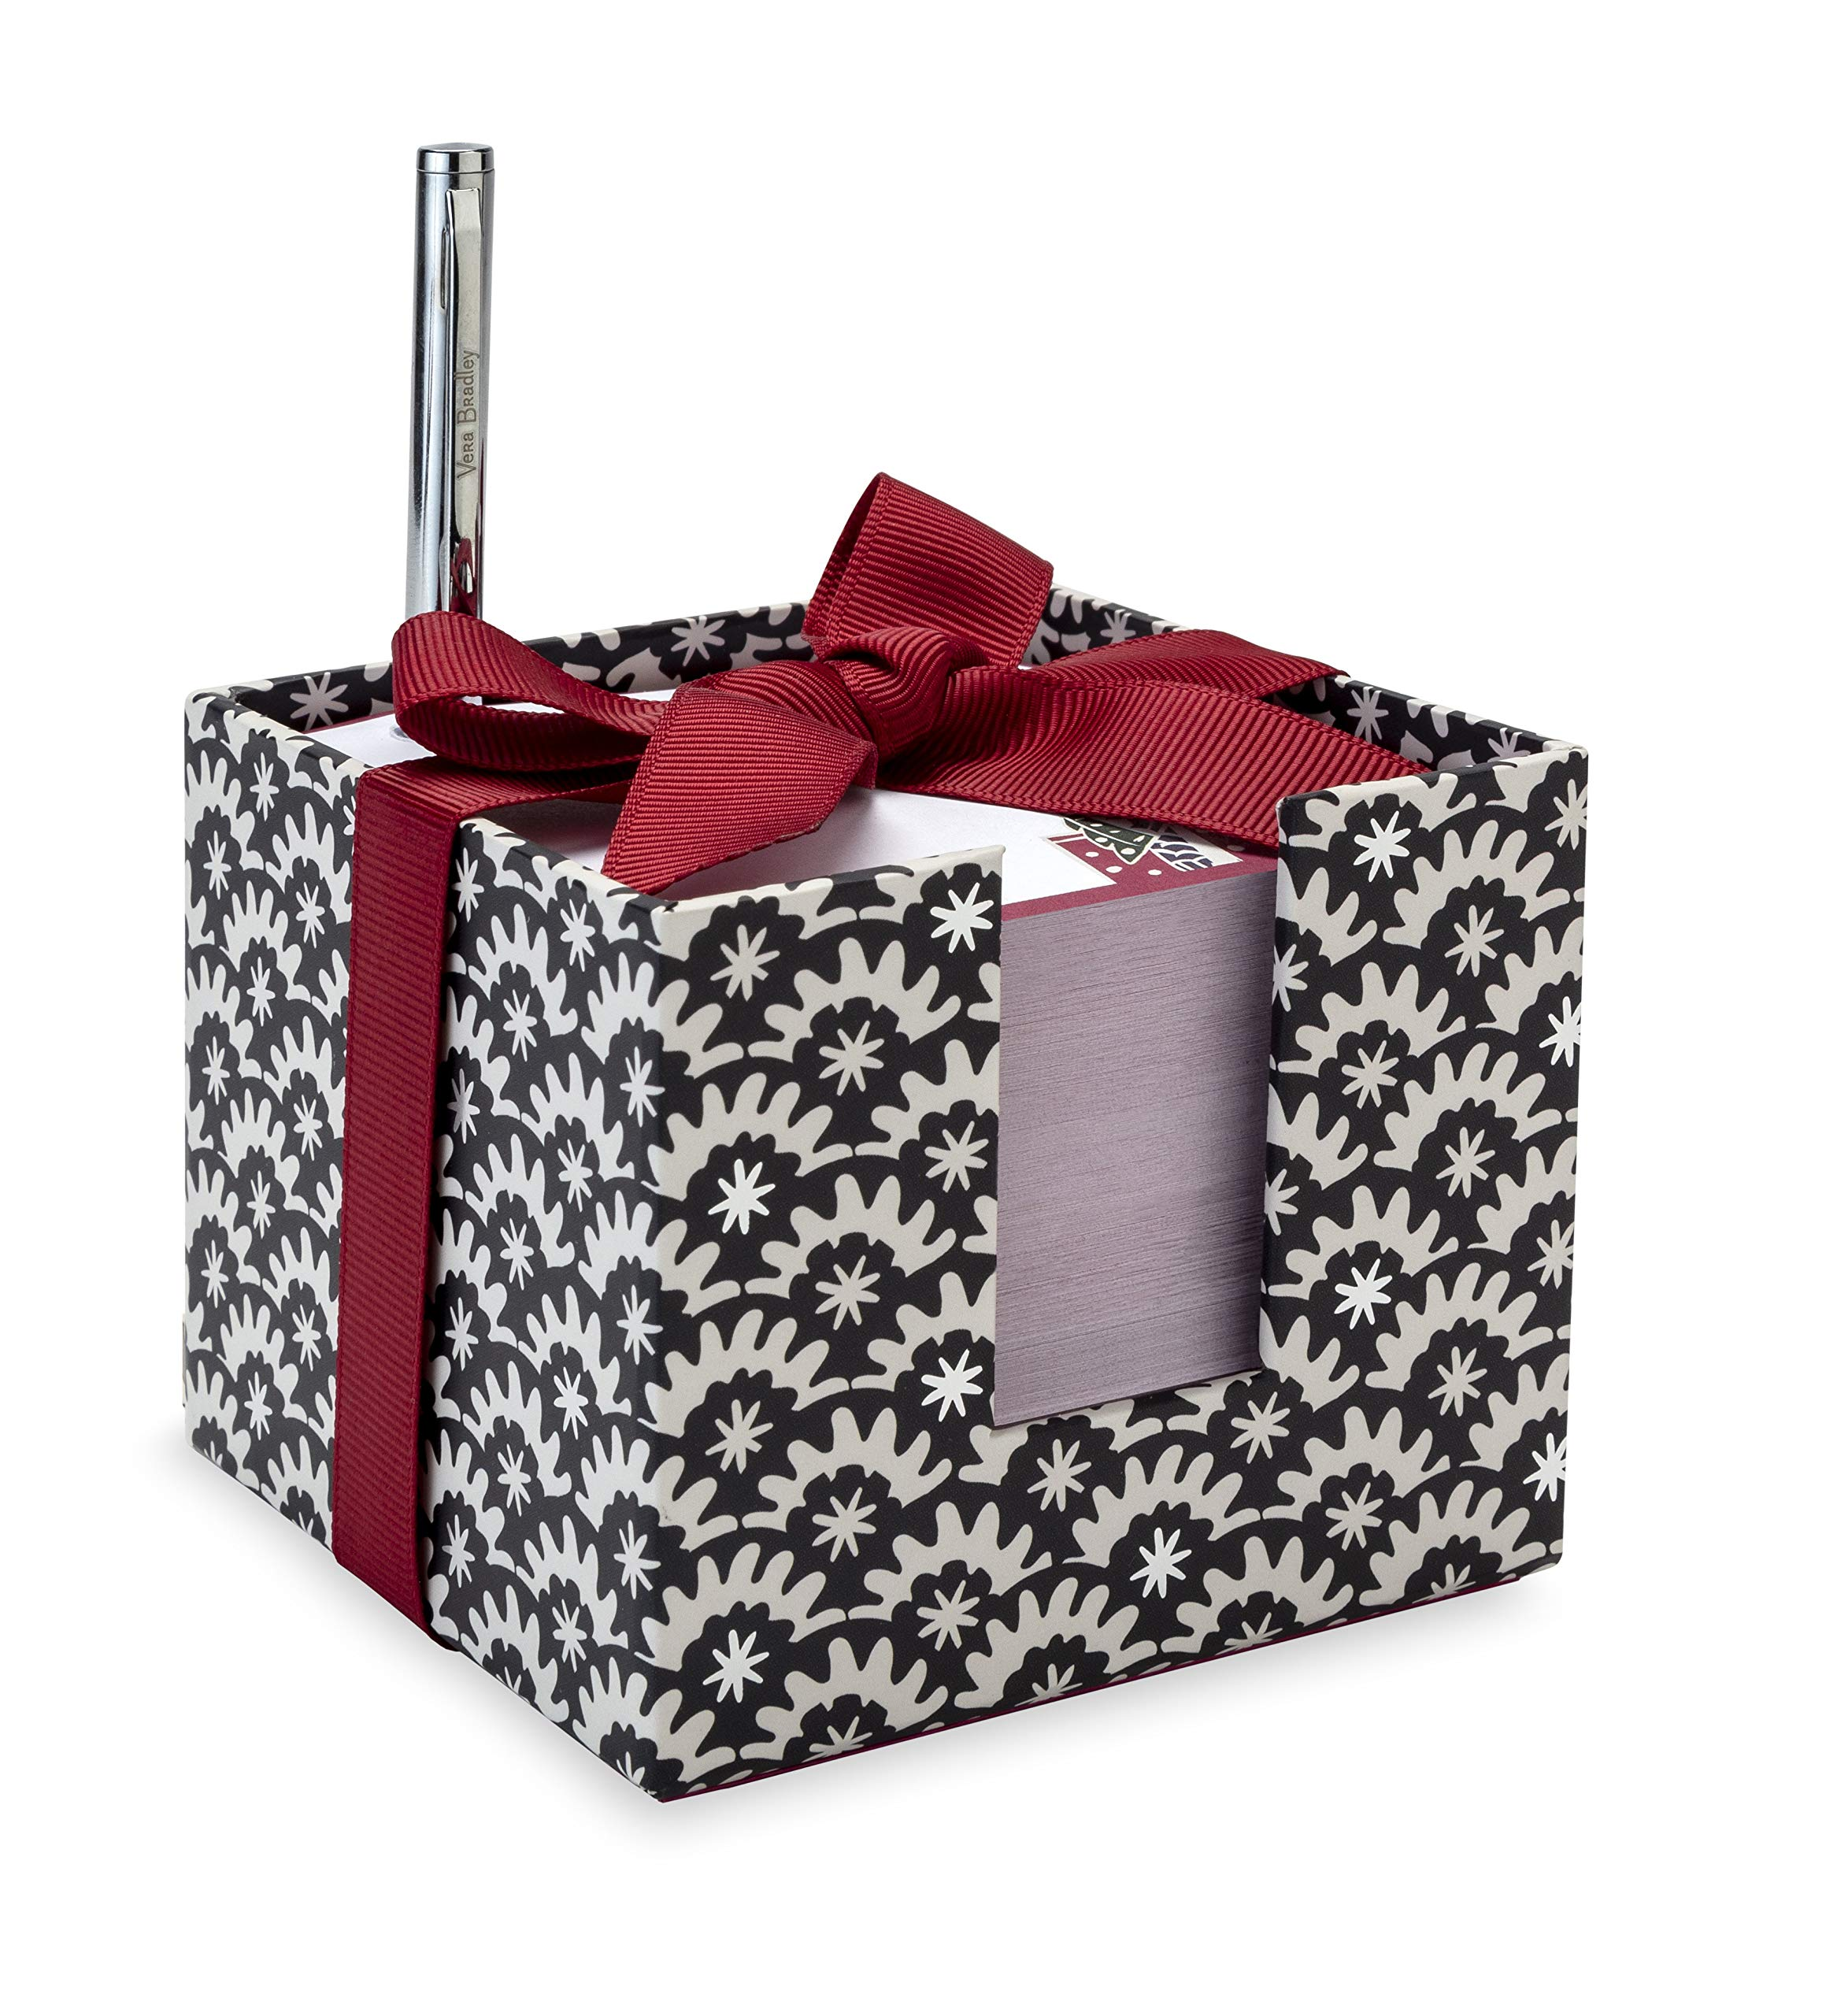 Vera Bradley Holiday Notecube with Black Ink Pen, 3.75'' x 3.75'' with 400 Sheets (Night Stars)